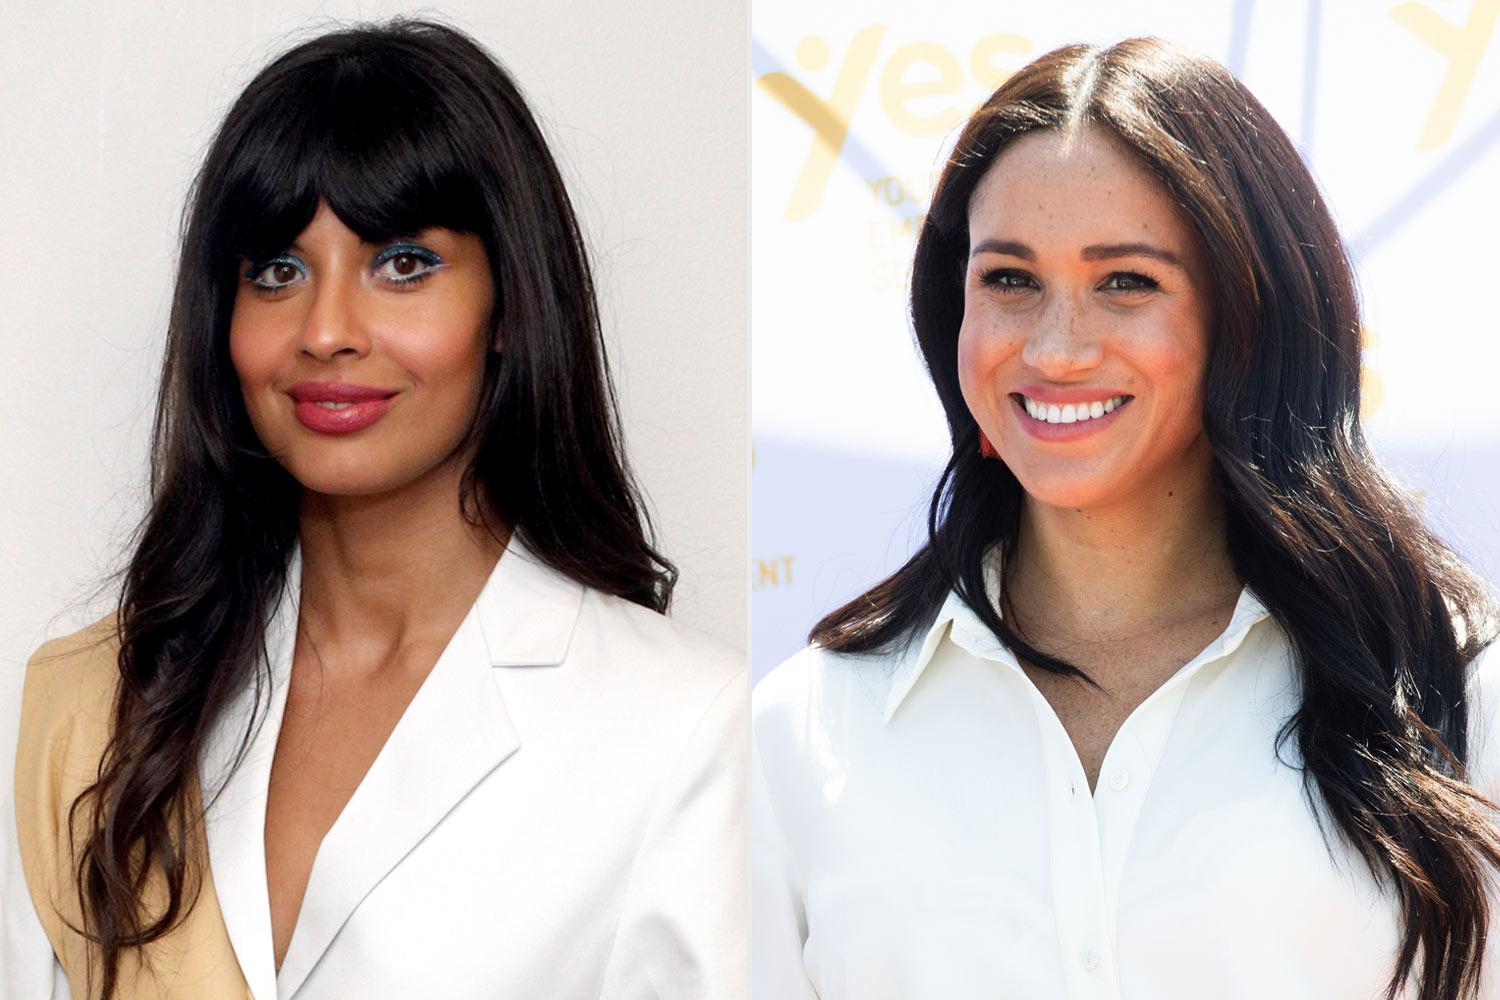 Jameela Jamil Addresses 'Ridiculous' Tabloid Reports That She And Meghan Markle Are In Quarantine Together - 'I've Met This Woman Once Ever!'